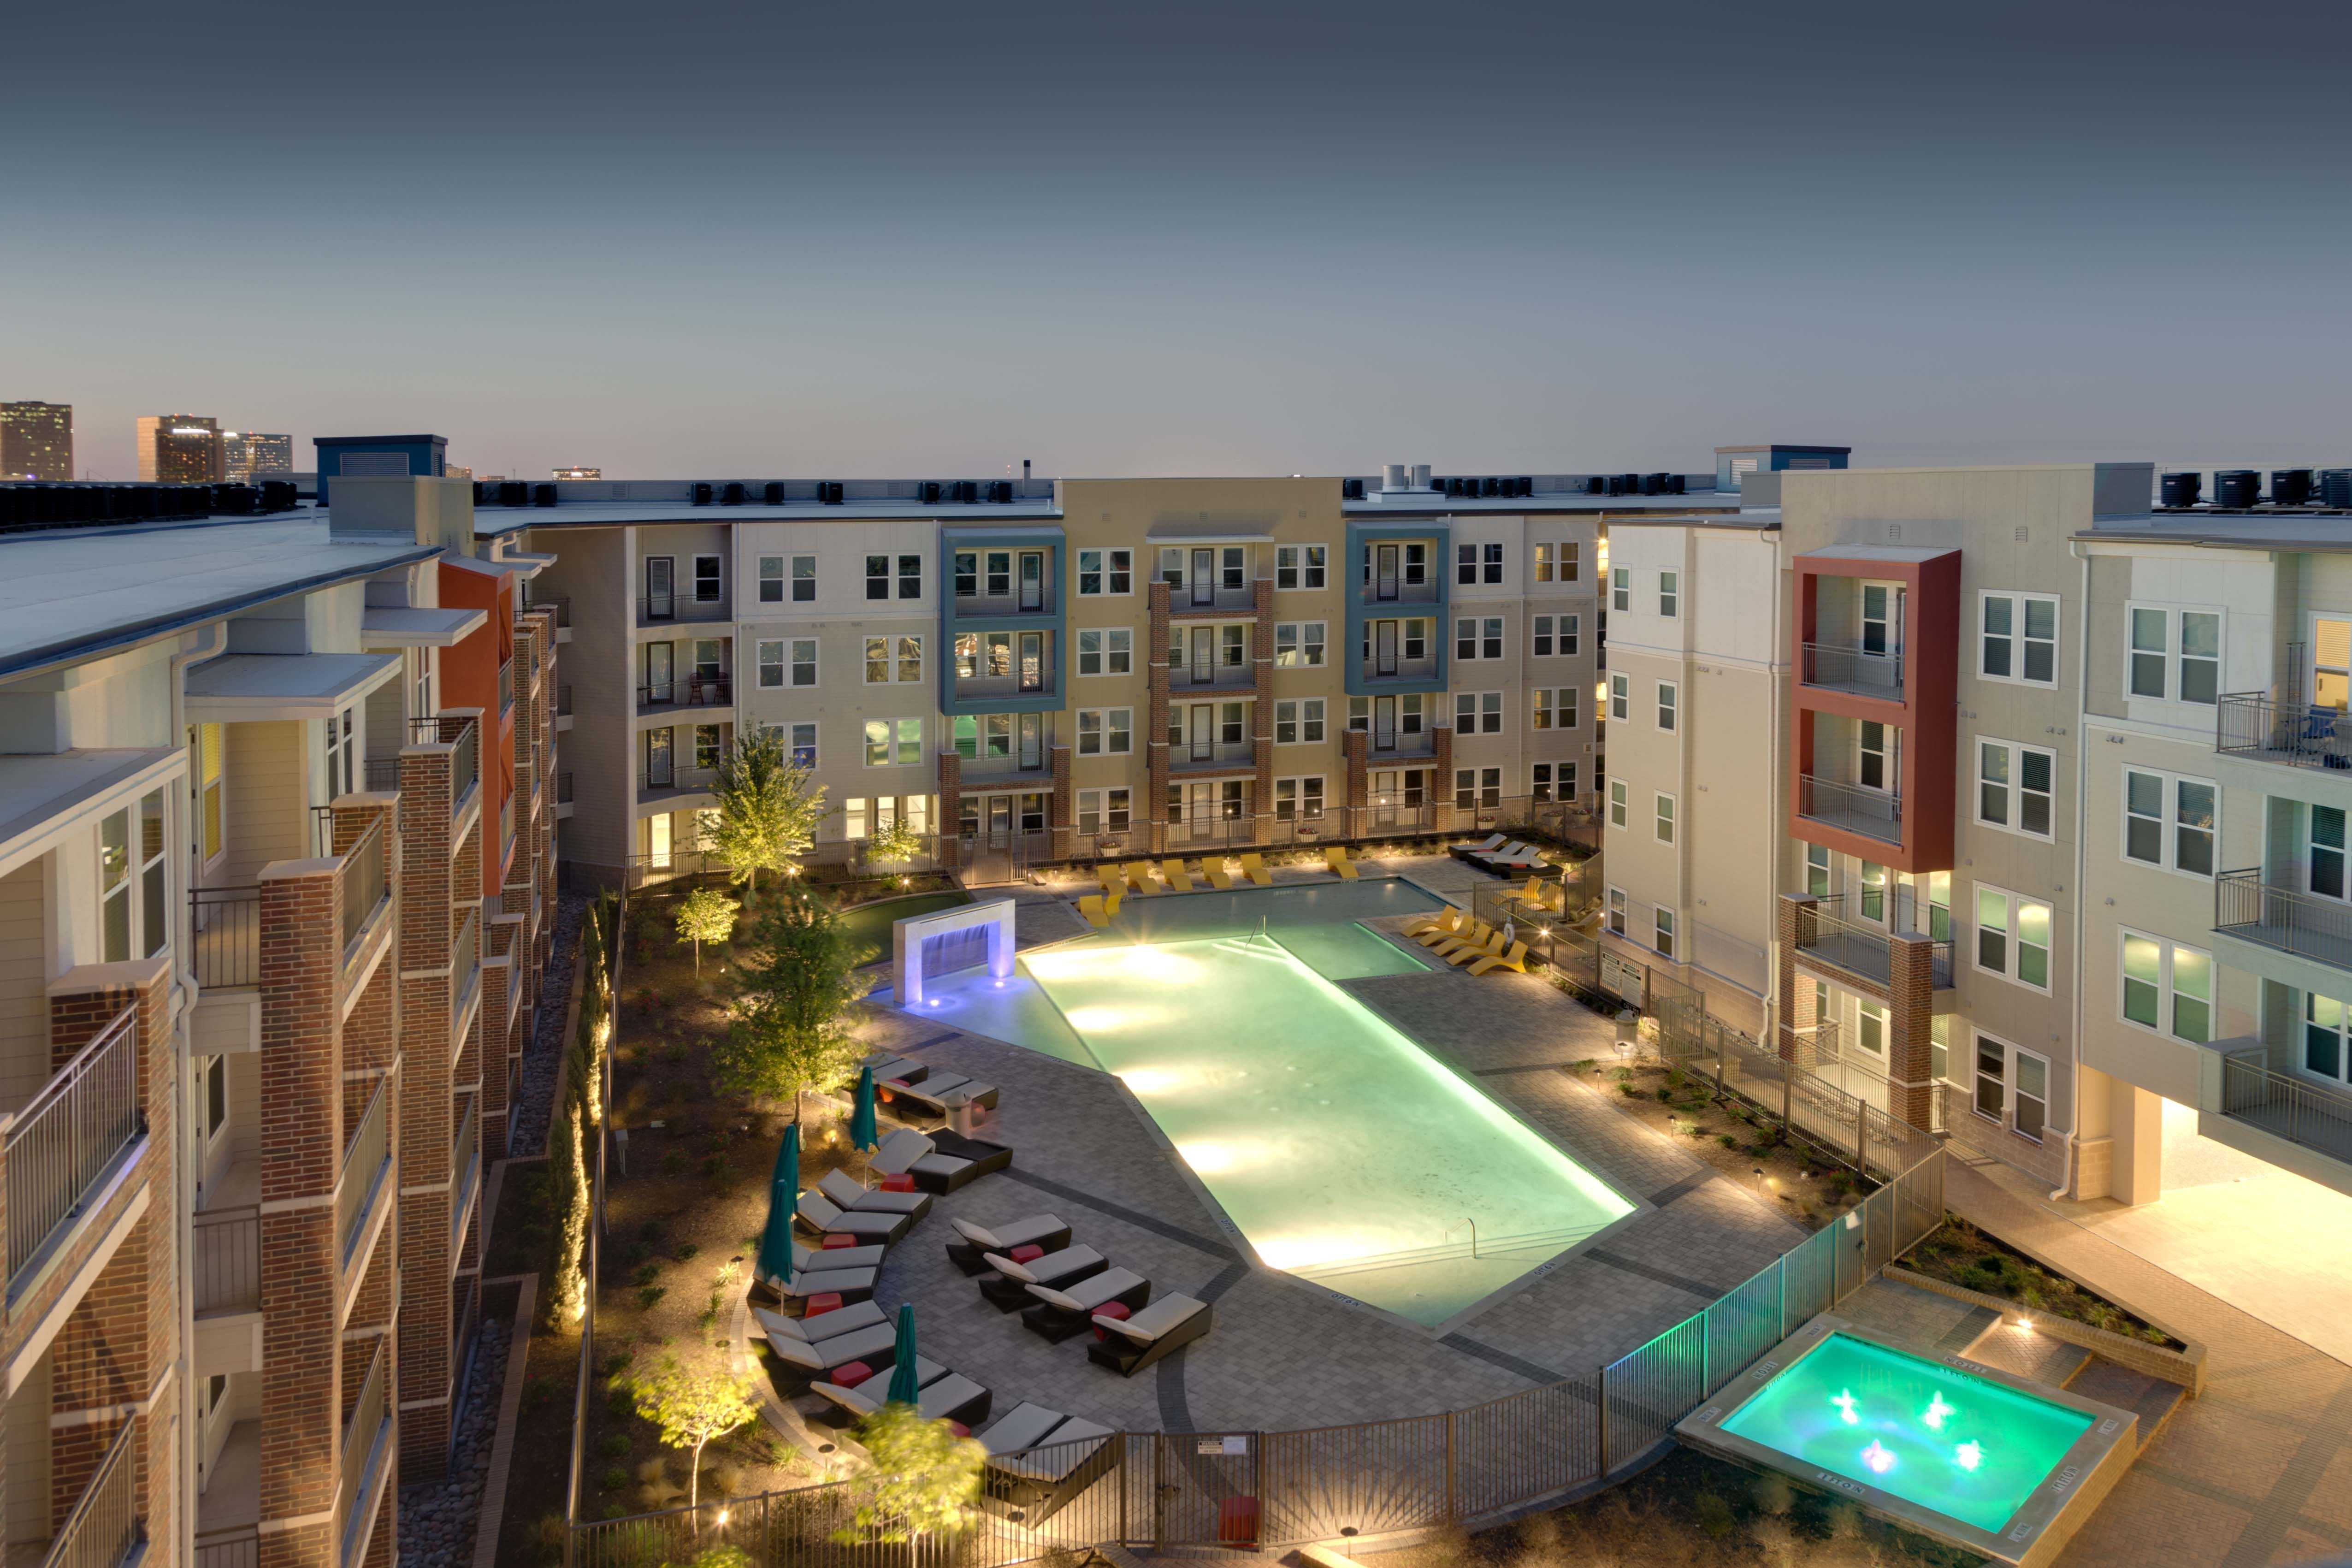 Commercial Property Led Landscape Lighting Installation Location Lovers Lane Dallas Tx Over 200 Led Light Pool At Night Led Landscape Lighting Dallas Luxury